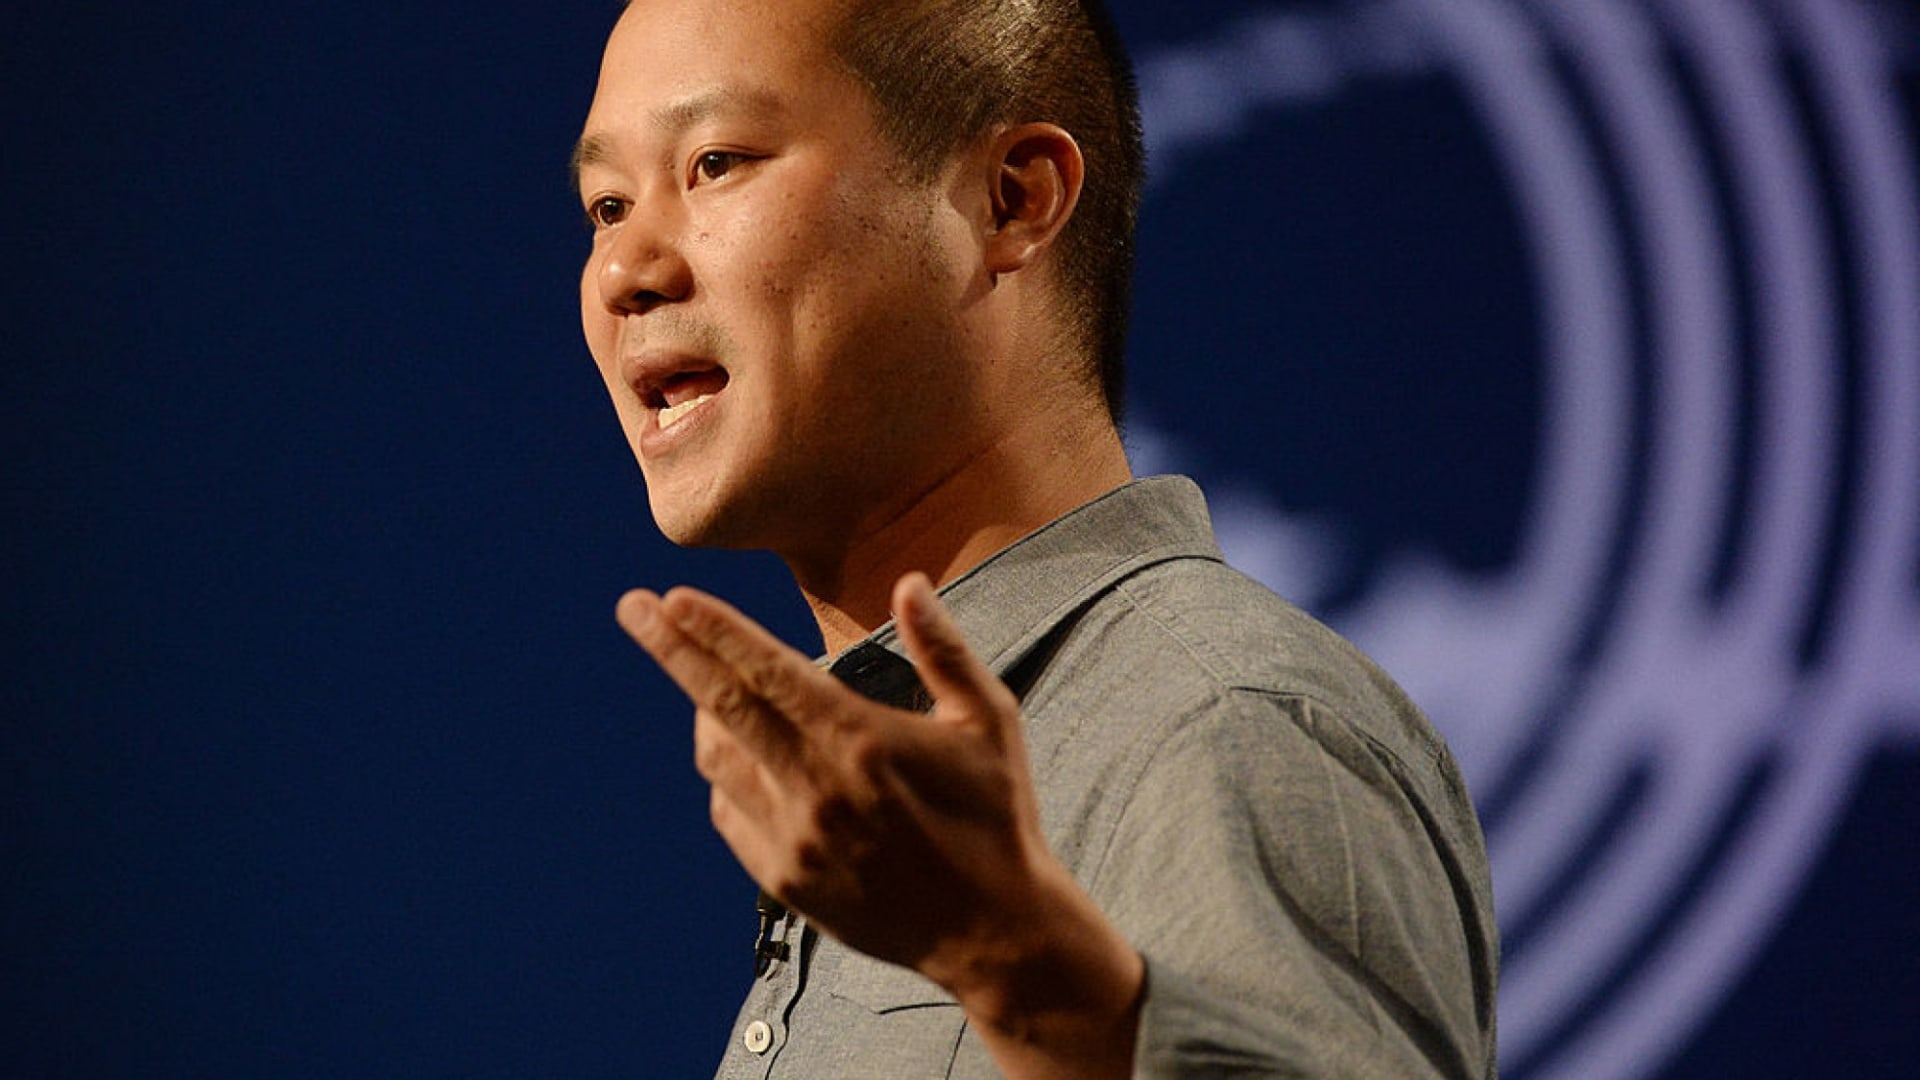 Tony Hsieh, Former Zappos CEO and Holacracy Pioneer, Dies at 46